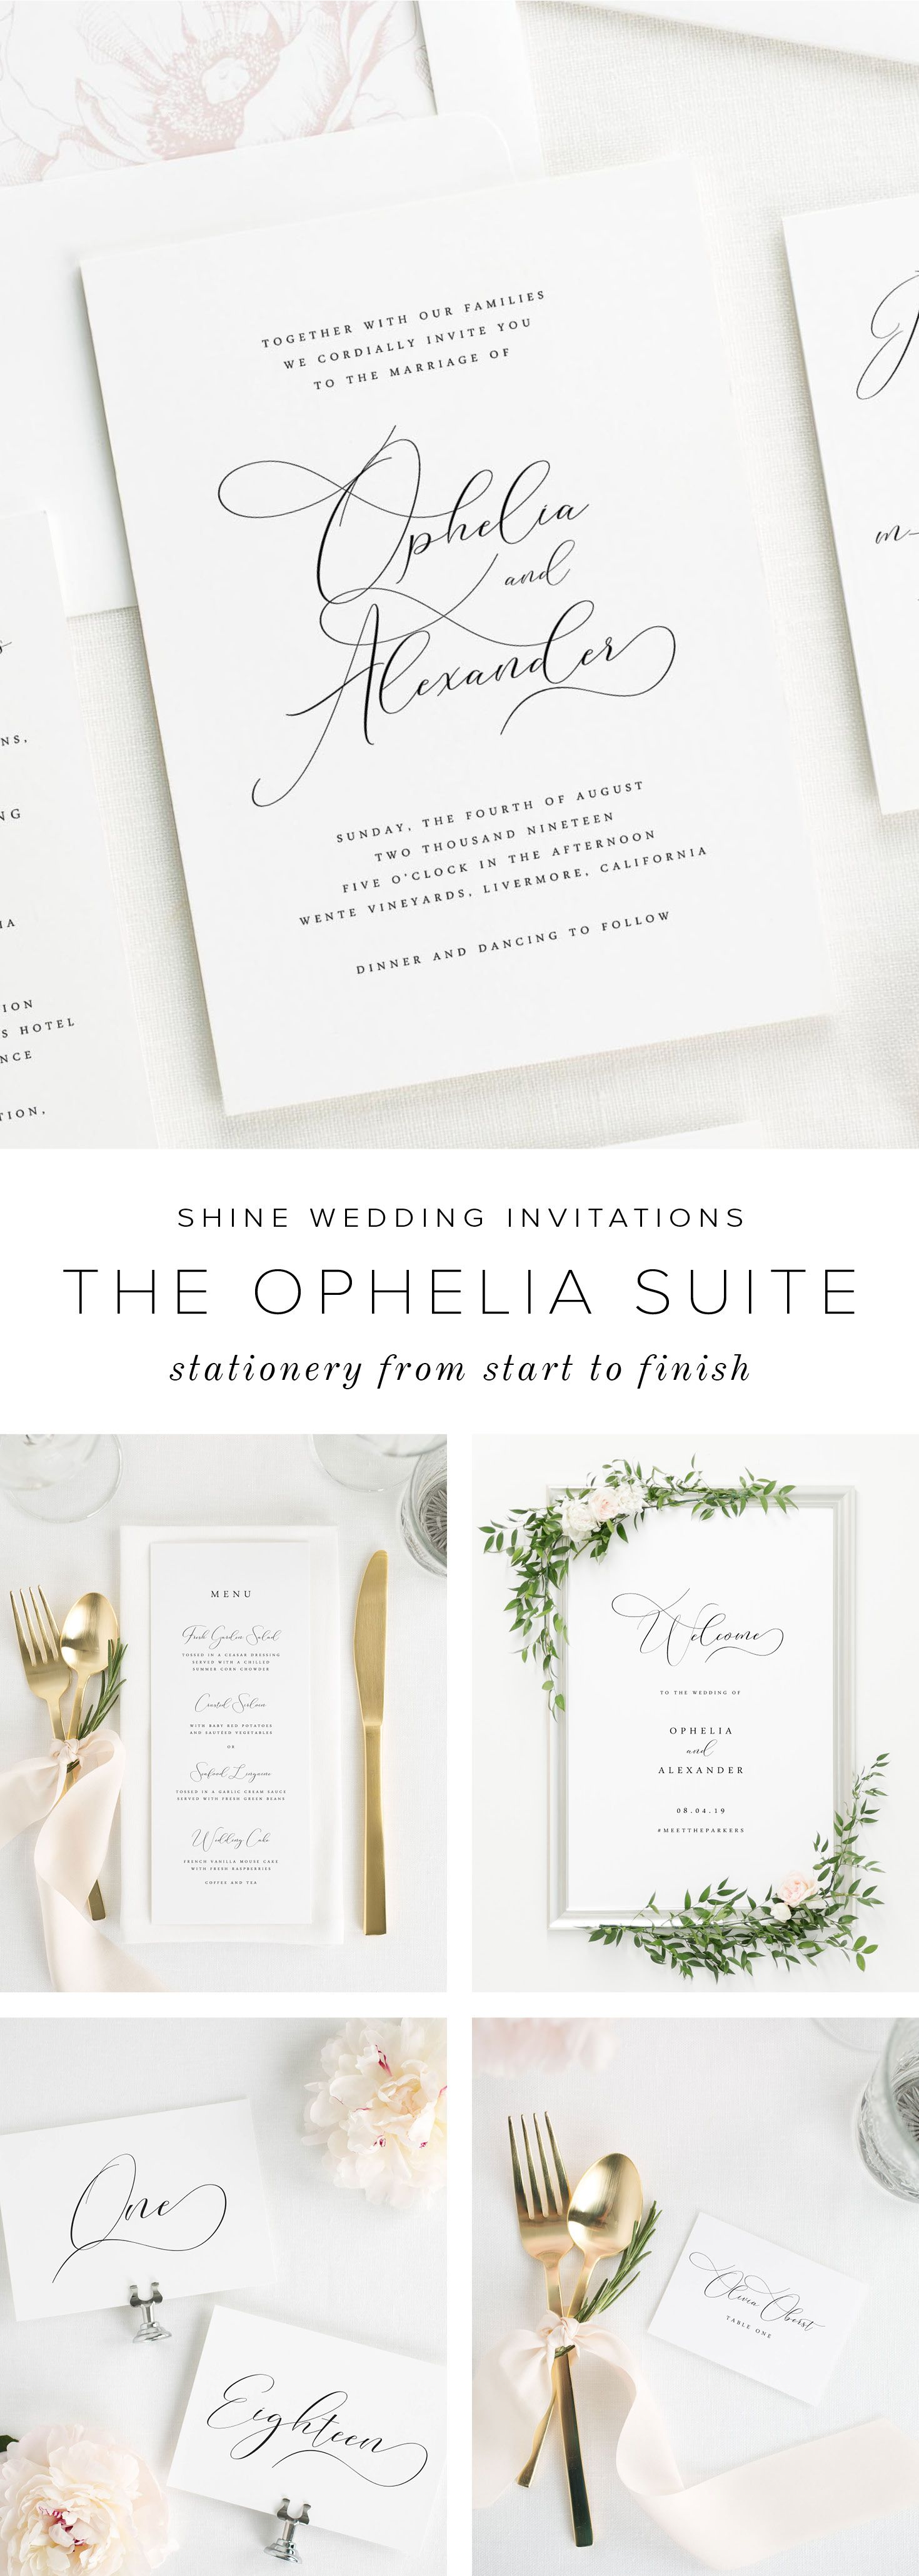 Ophelia Wedding Invitations is part of Timeless wedding invitations - A delicate calligraphyinspired font adds a touch of drama to these elegant Ophelia wedding invitations  Shown in black ink with a garden rose envelope liner and belly band in black